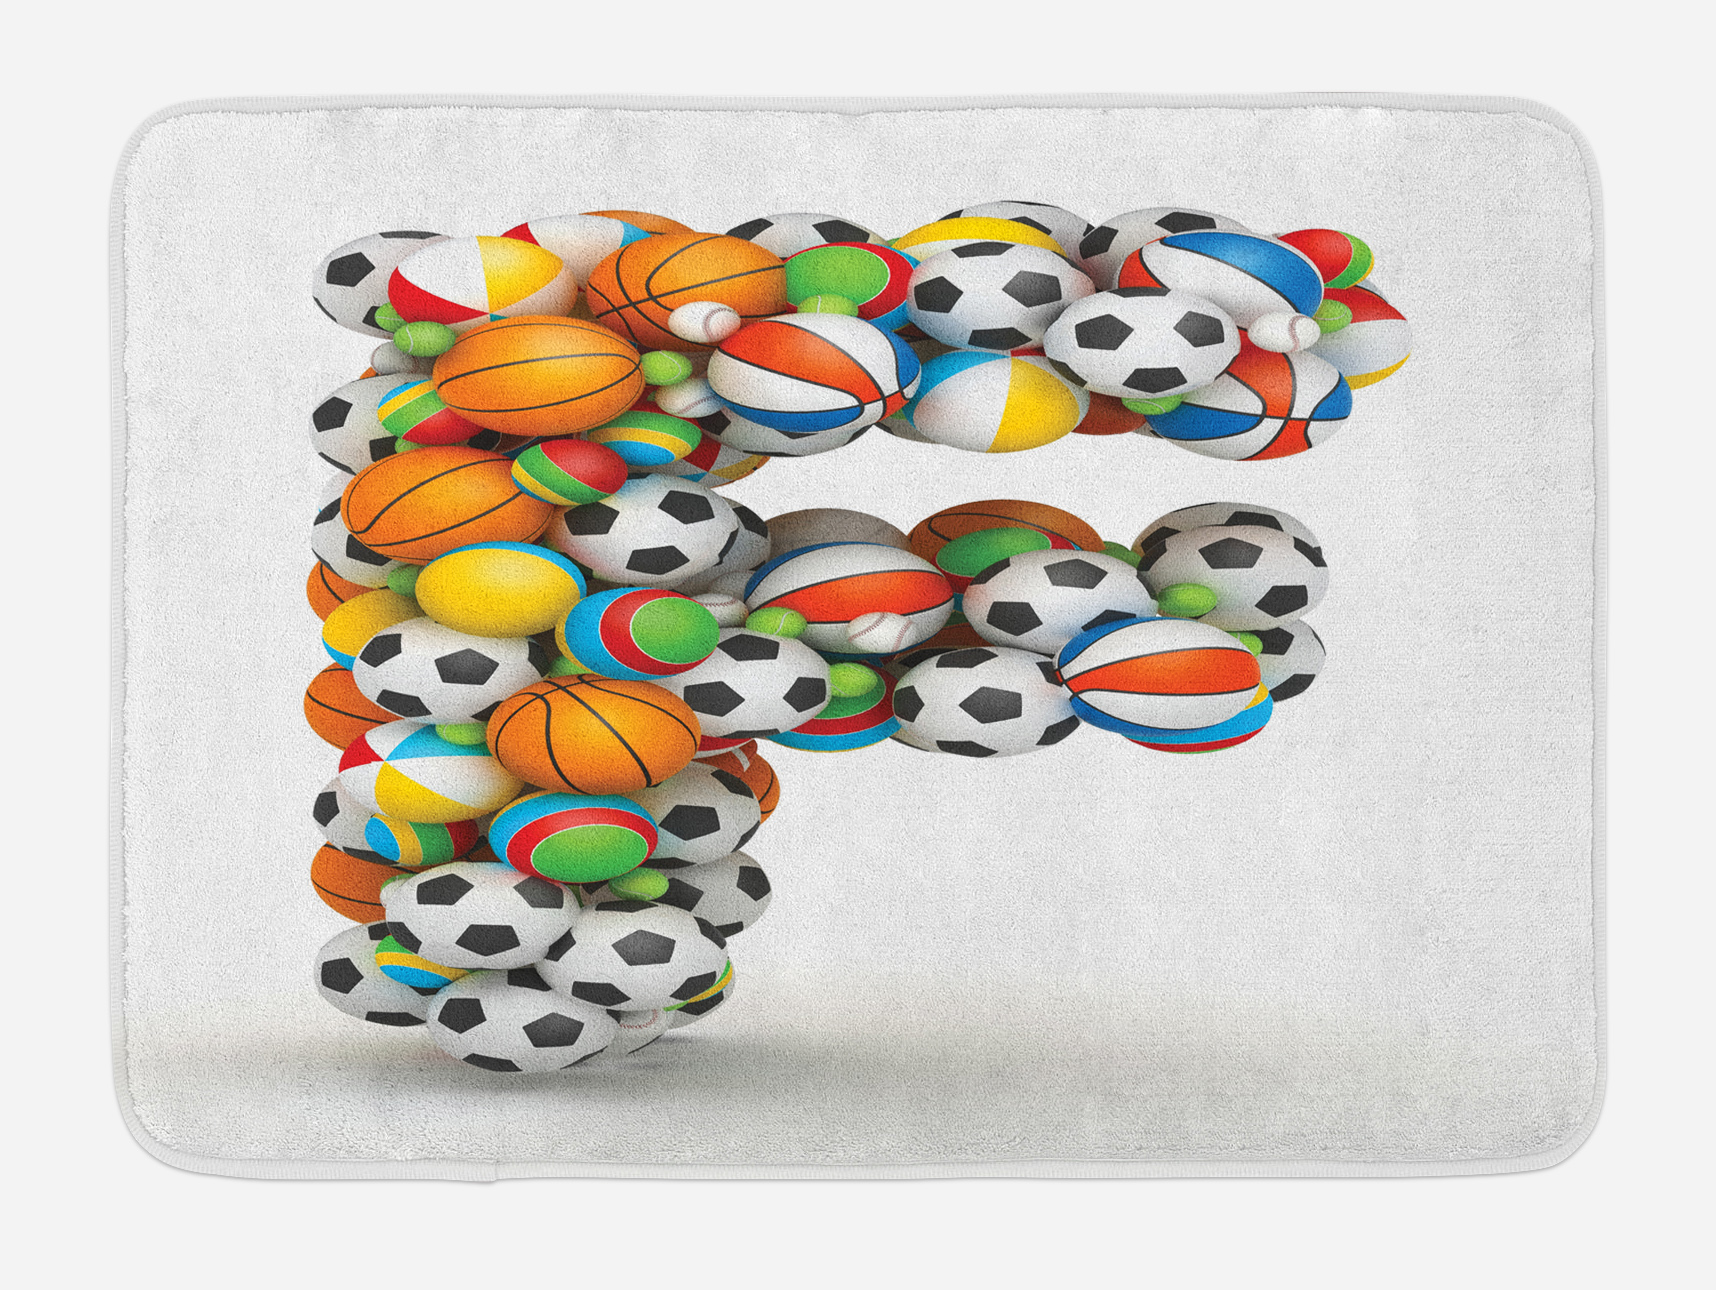 Letter F Bath Mat, Shape of Letter F with Colorful Balls for Kids Alphabet Design Sporting... by 3decor llc